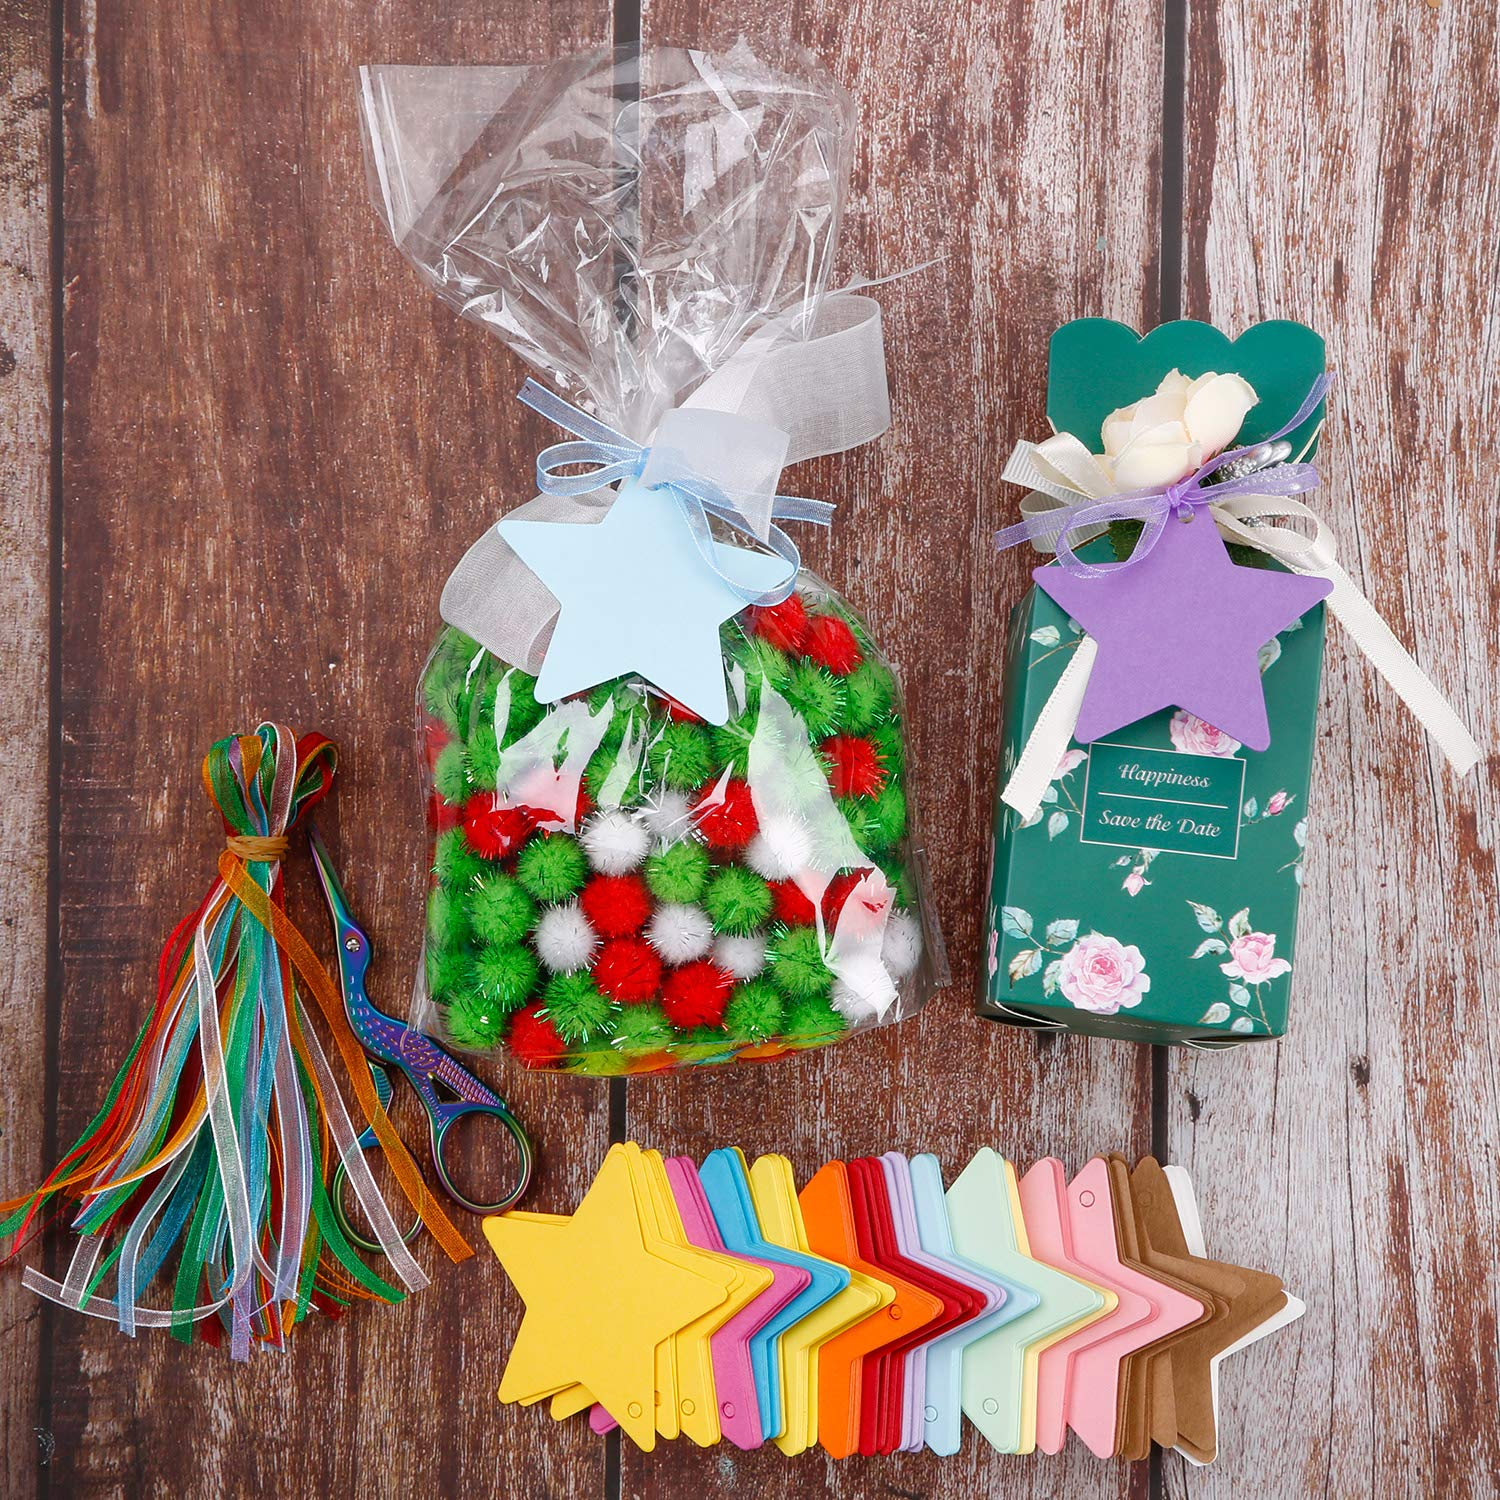 240 Pieces Gift Tags 20 Colors Style B Kraft Paper Tags Craft Hanging Tags Wishing Tree Tags Name Place Cards Price Tags Labels Treats Tags Scrapbook Cards with Hole